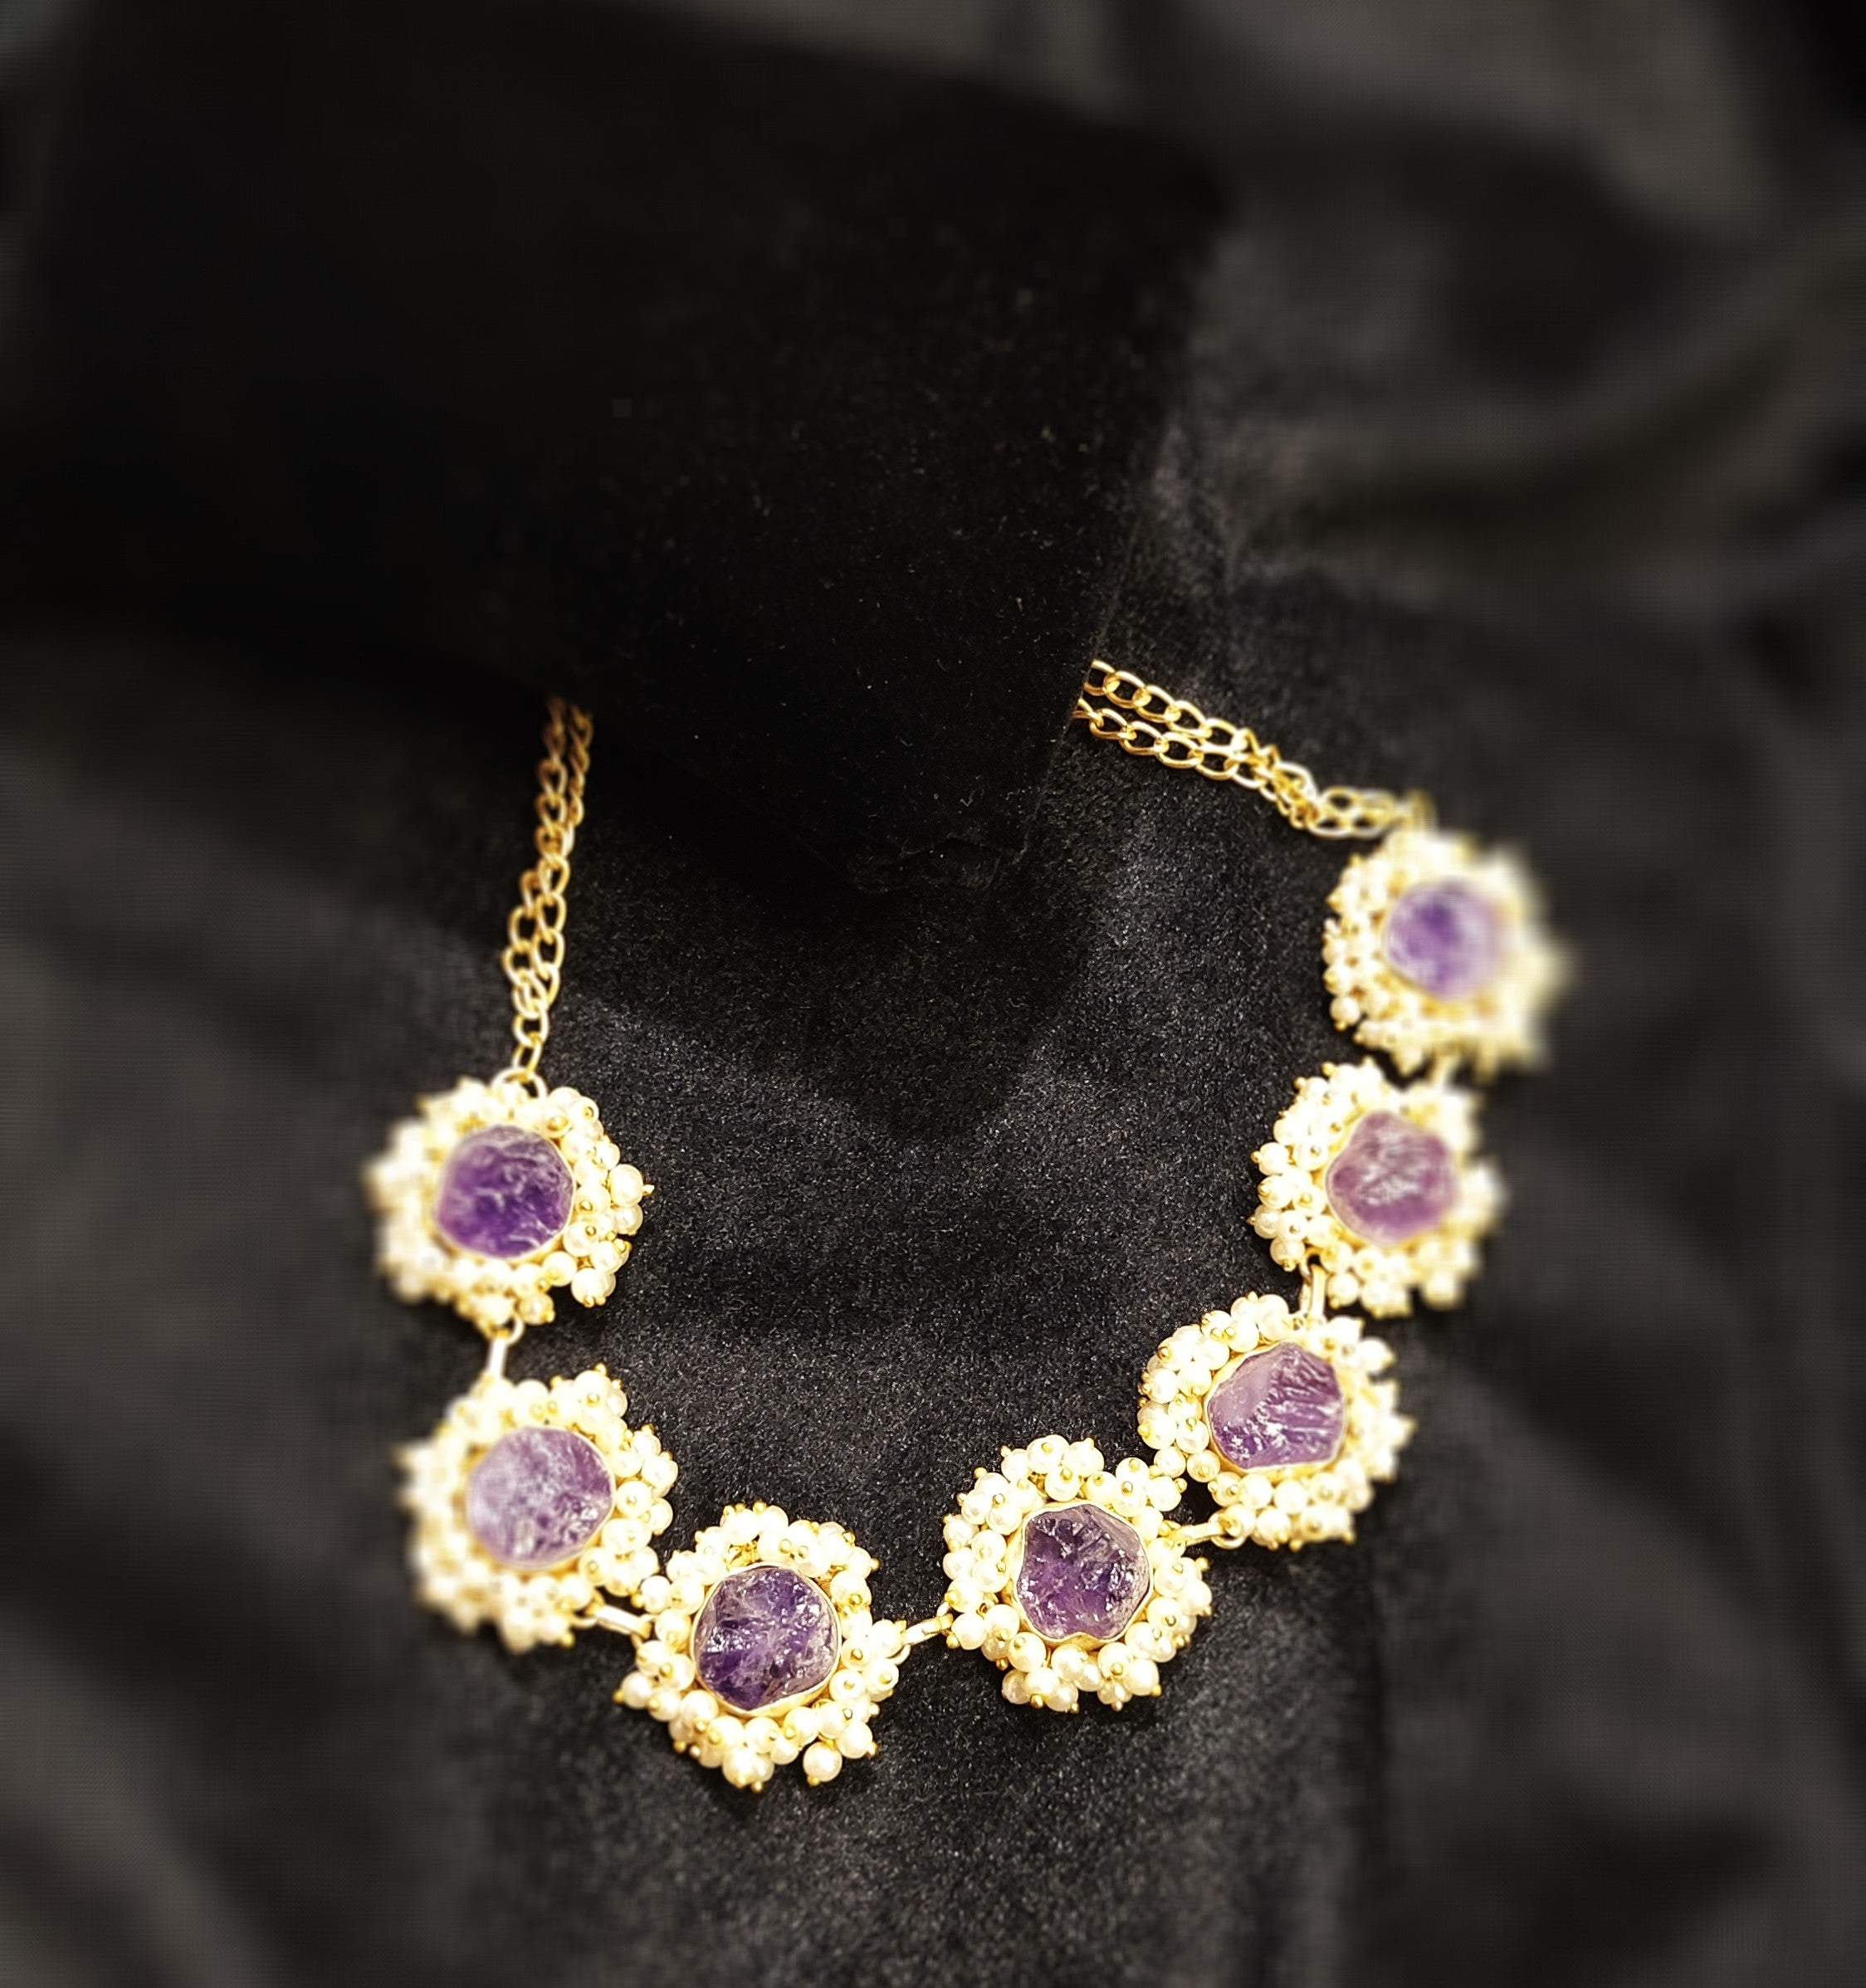 Amethyst choker / necklace